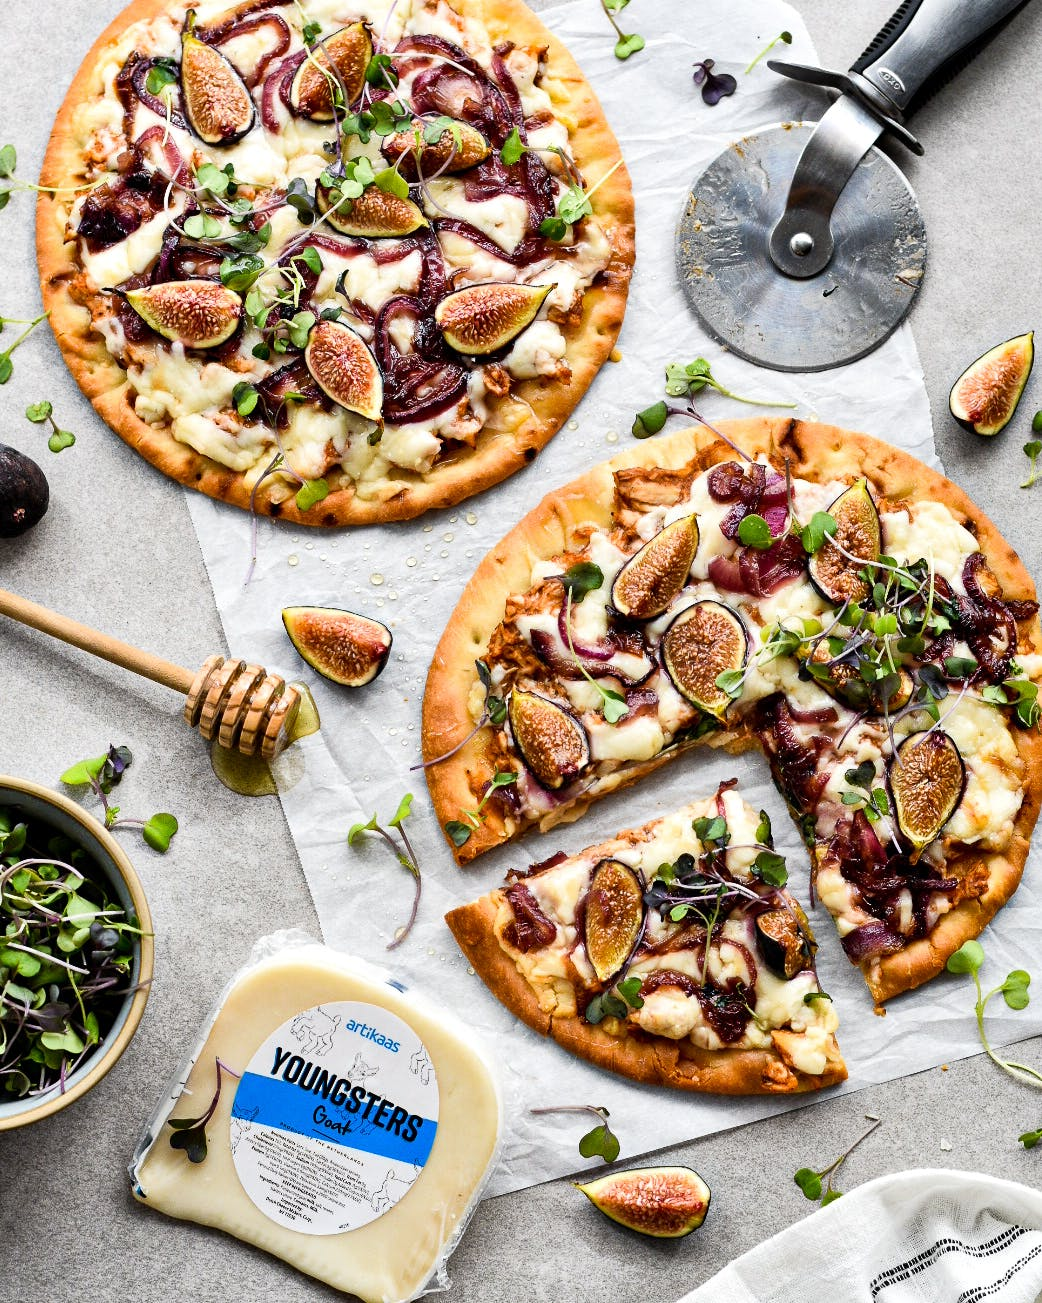 Barbecue Fig Chicken Pizza with Artikaas Goat Gouda